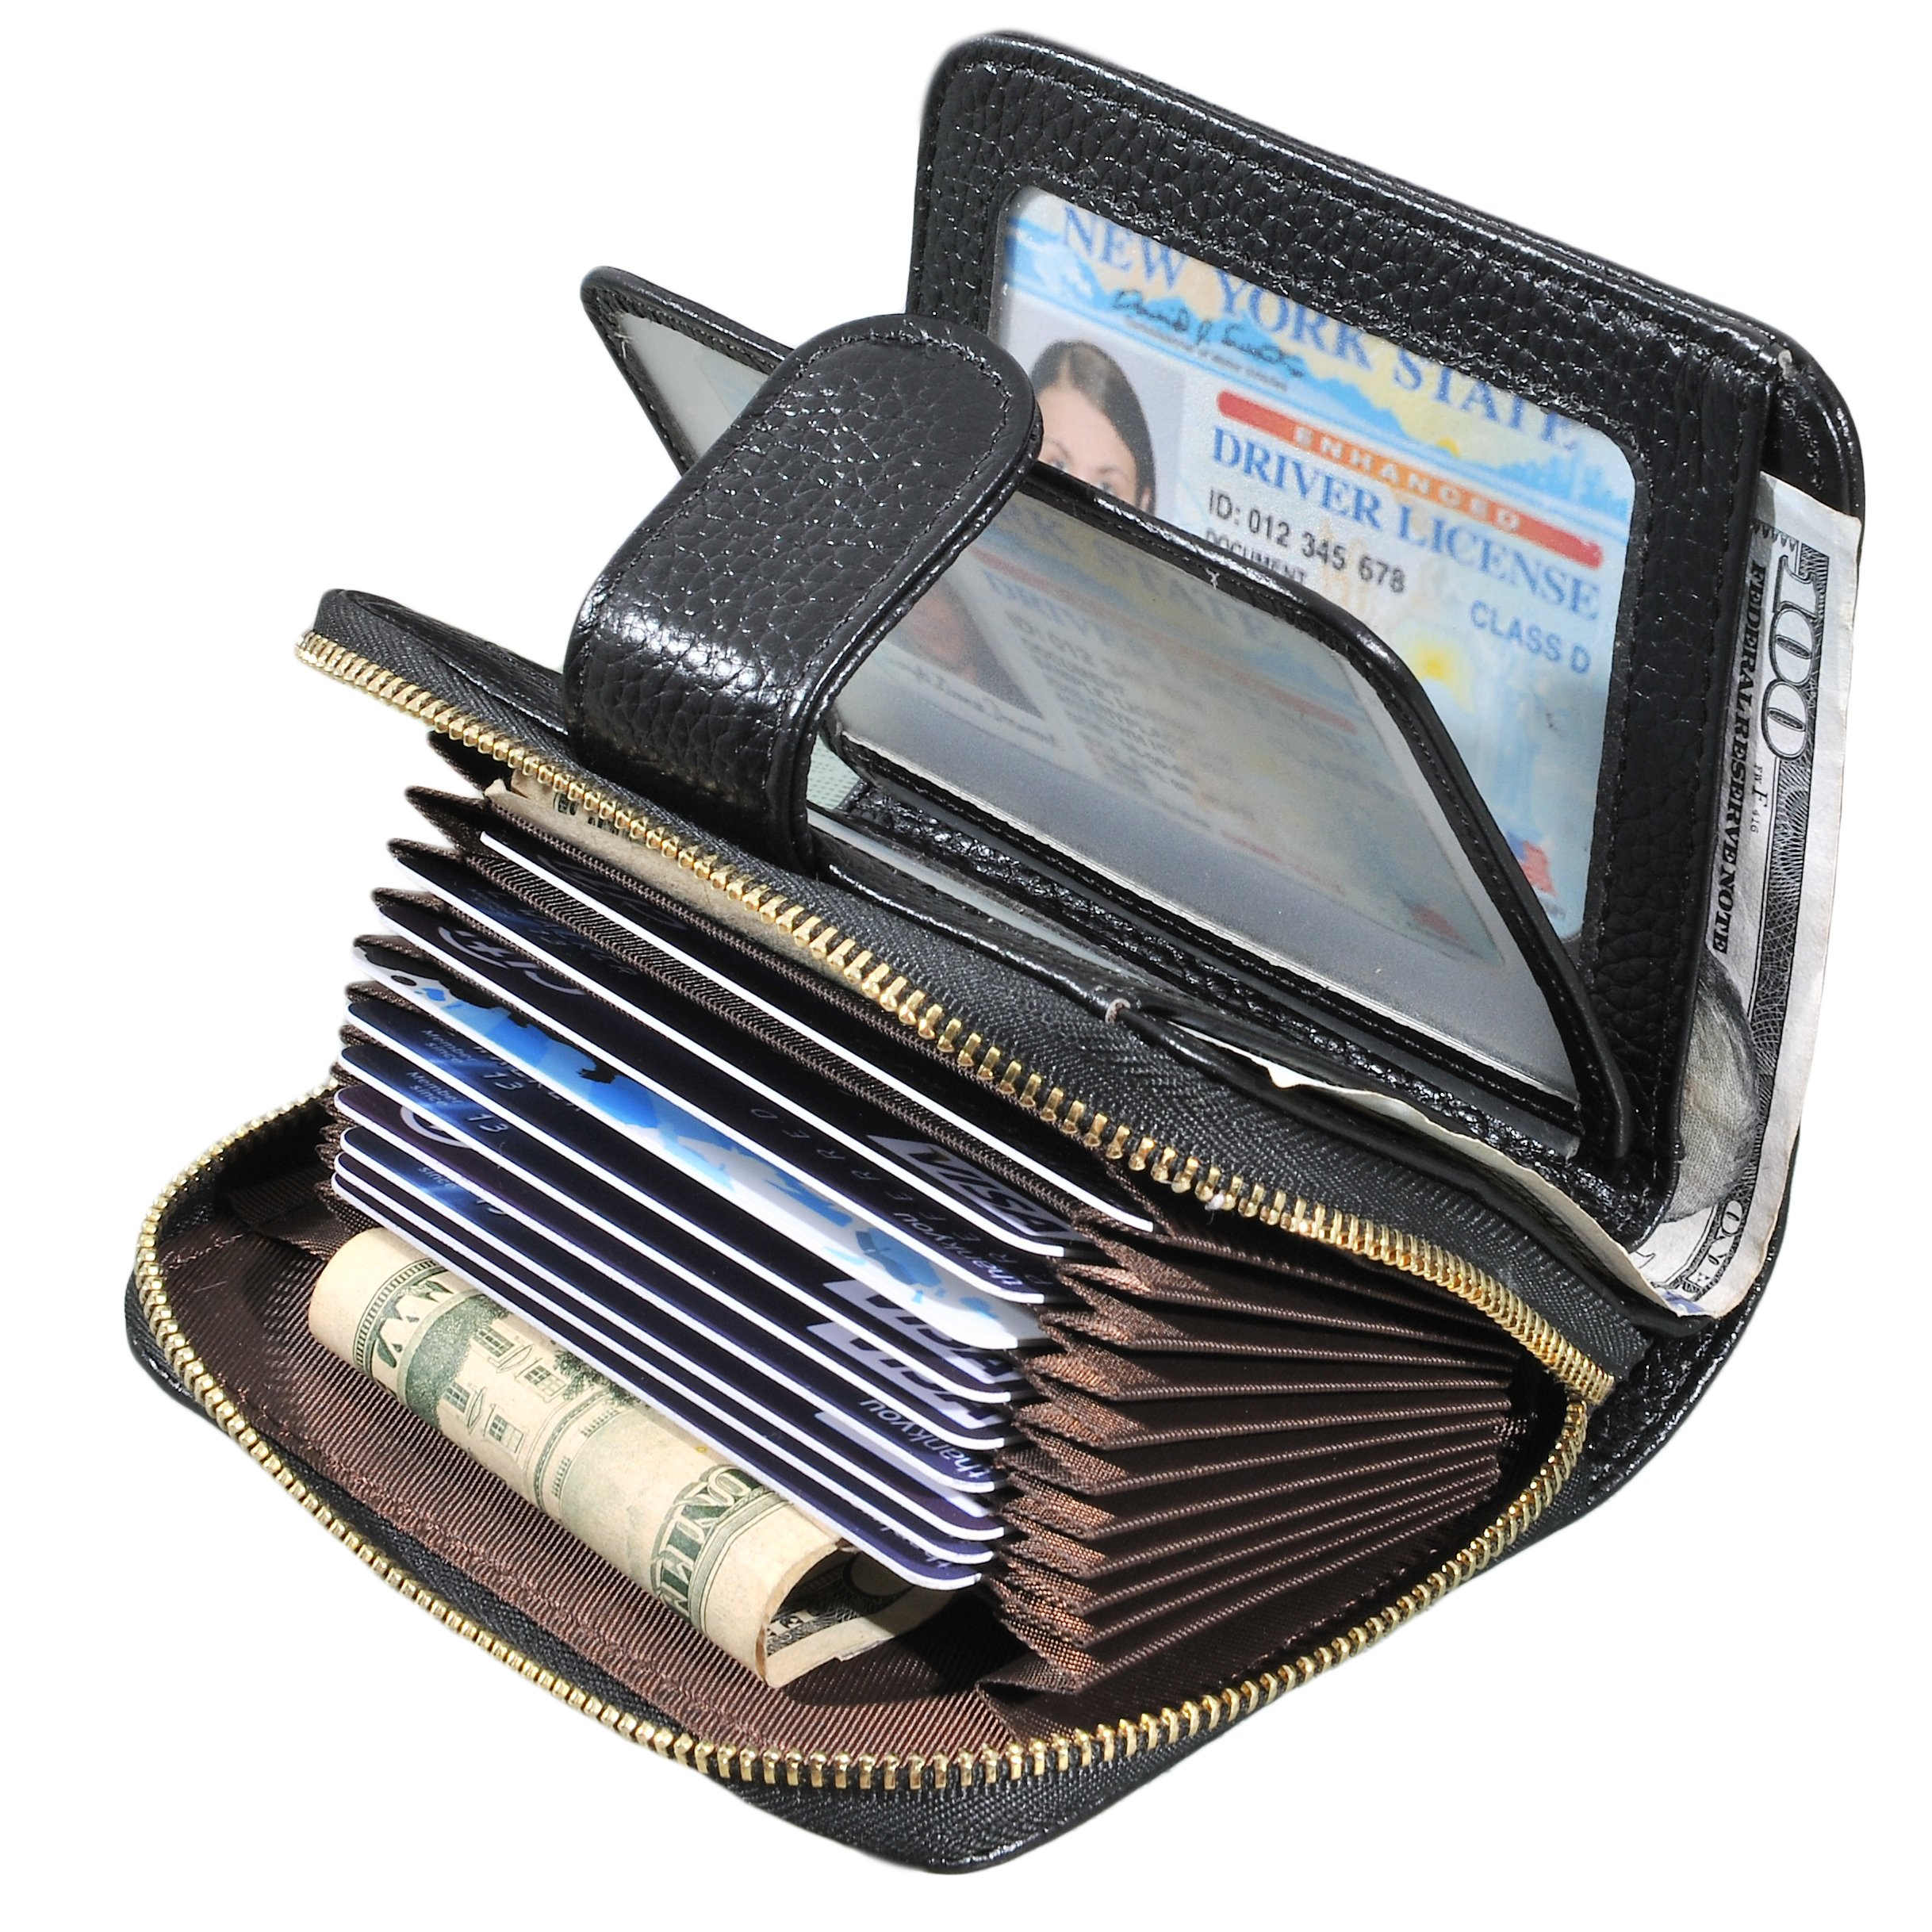 Beurlike Women's RFID Credit Card Holder Organizer Case Leather Security Wallet (Black)